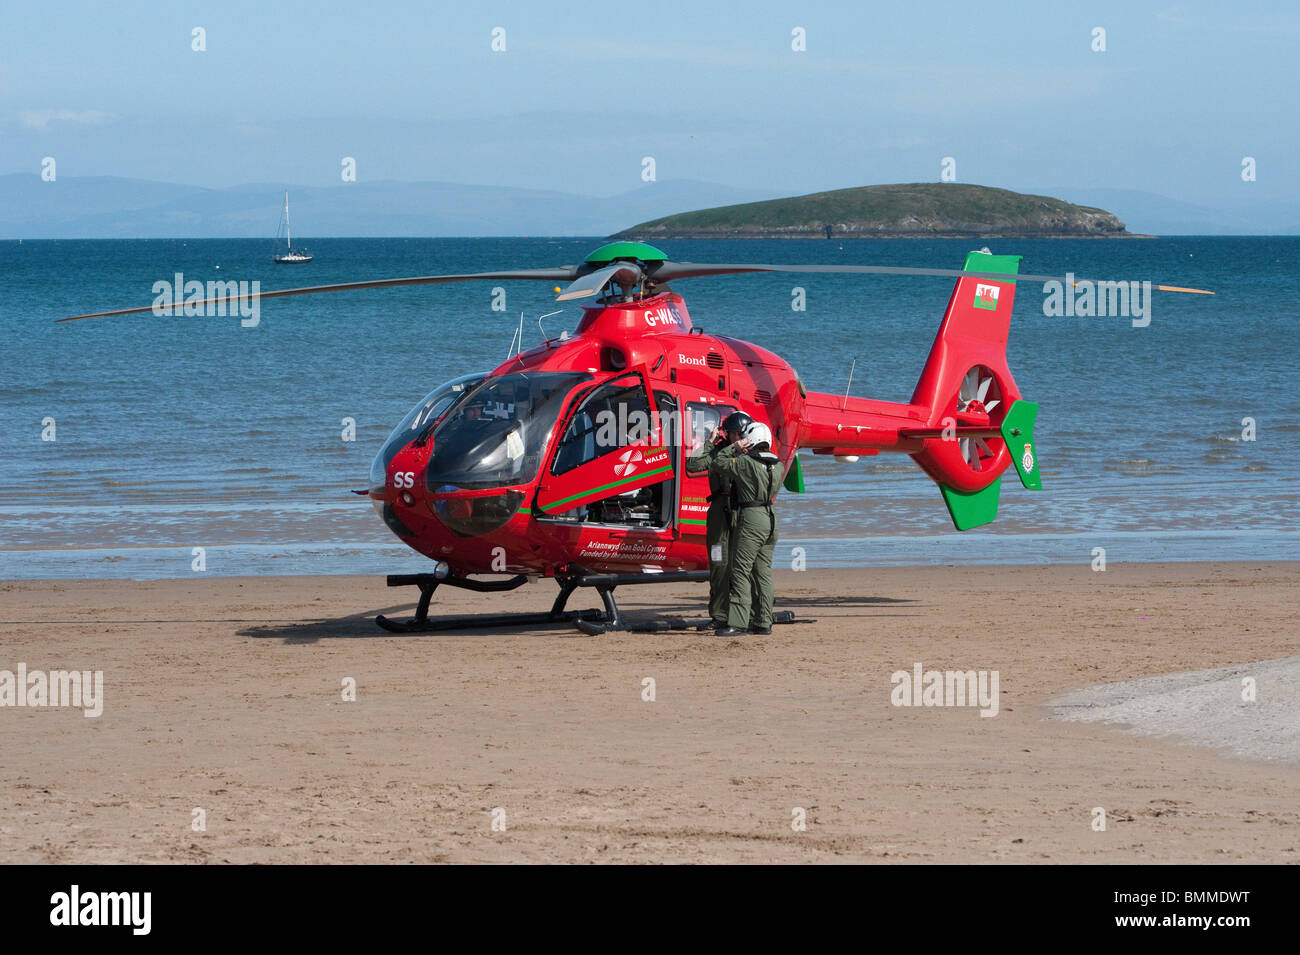 Welsh Air Ambulance on Beach, Crew standing - Stock Image